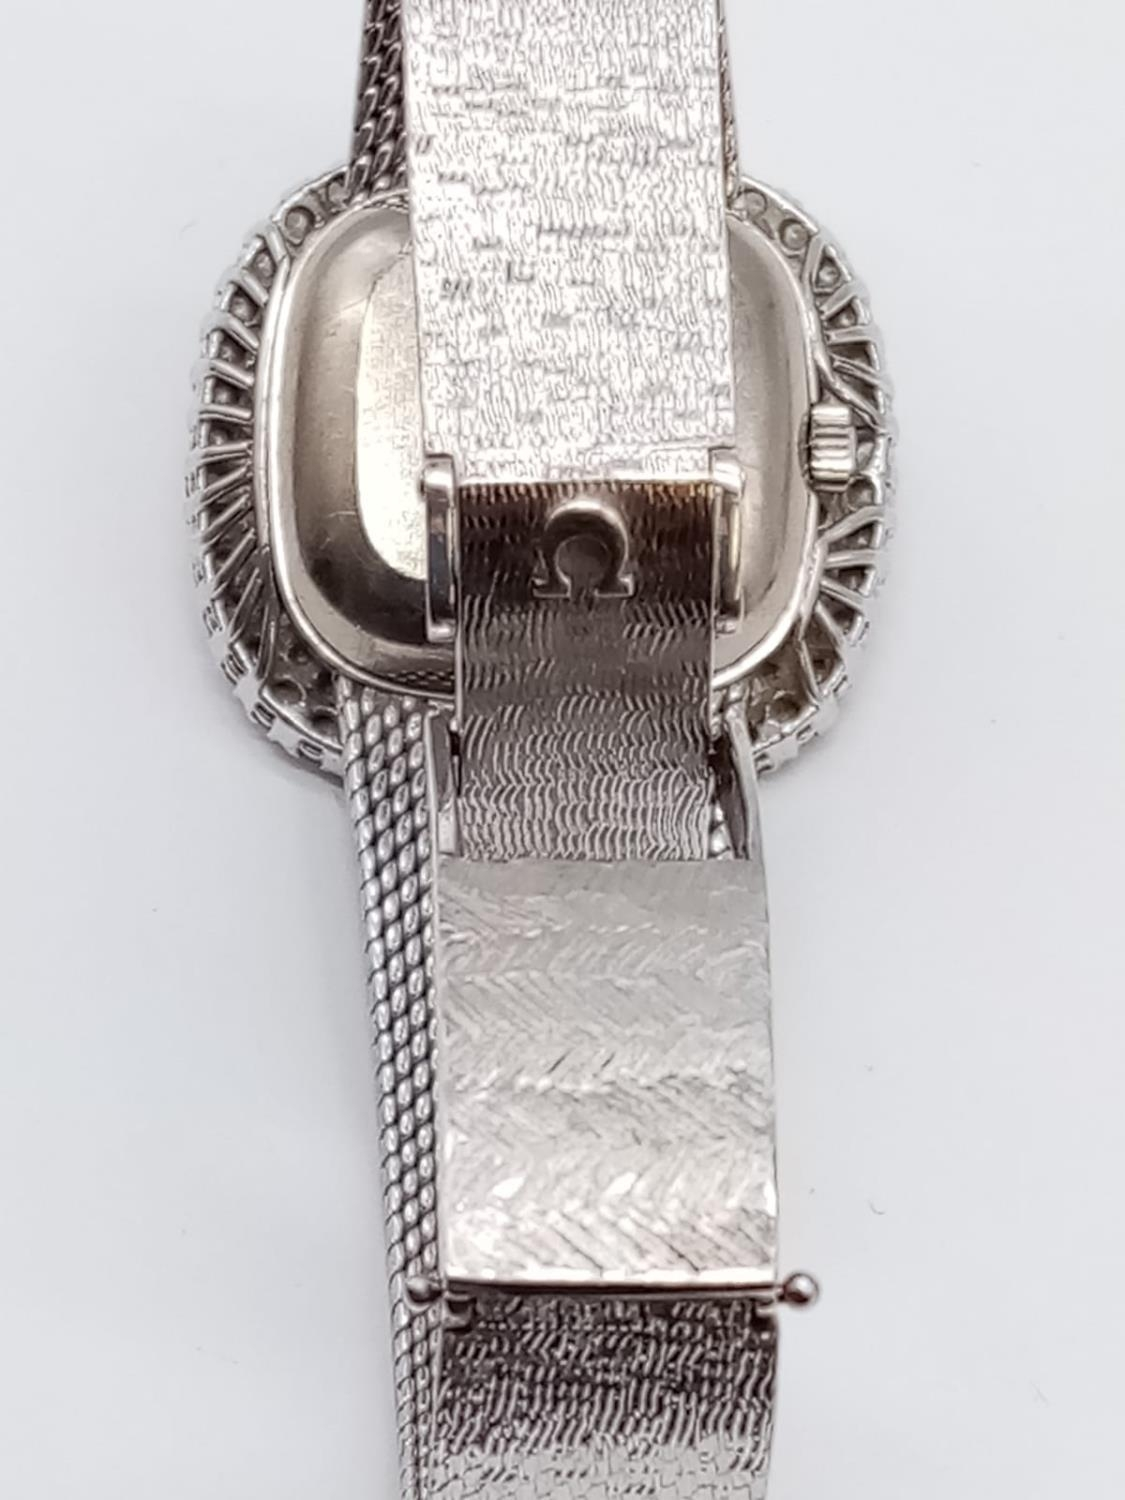 Vintage 18ct white gold OMEGA de Ville ladies automatic watch, square face with diamond encrusted - Image 5 of 7